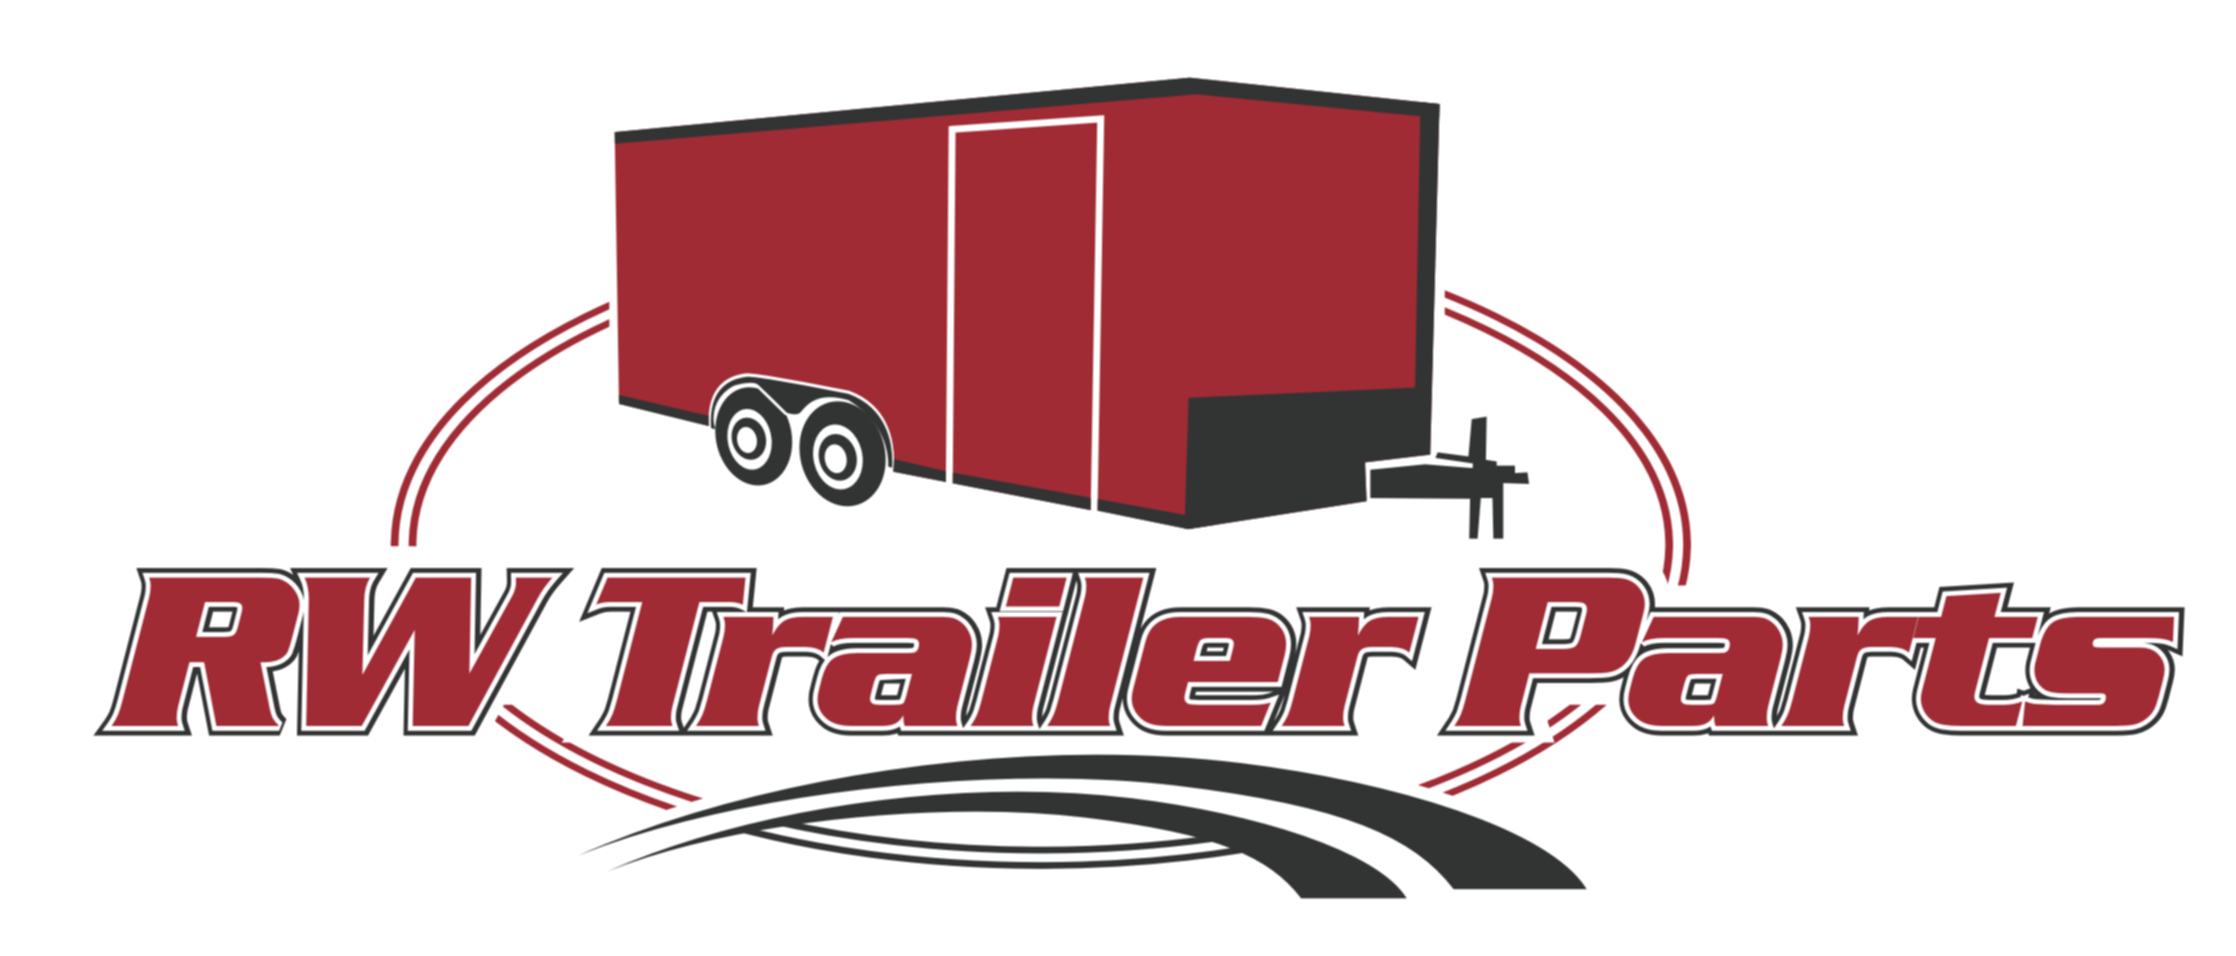 Diagnosing And Repairing Trailer Lights And Wiring | Rwtrailerparts - Trailer With Brakes Wiring Diagram